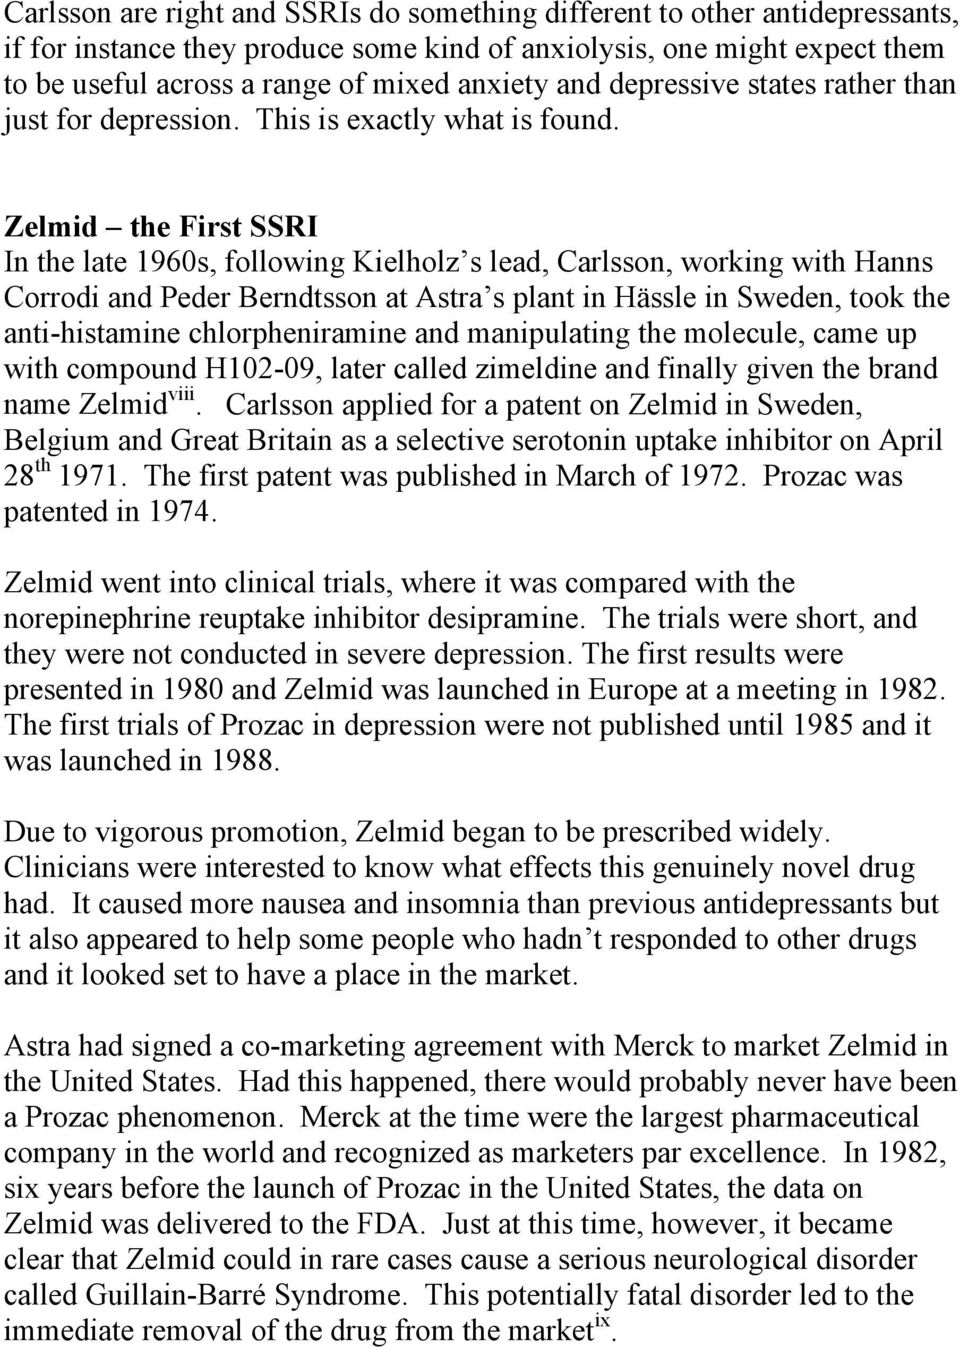 Zelmid the First SSRI In the late 1960s, following Kielholz s lead, Carlsson, working with Hanns Corrodi and Peder Berndtsson at Astra s plant in Hässle in Sweden, took the anti-histamine